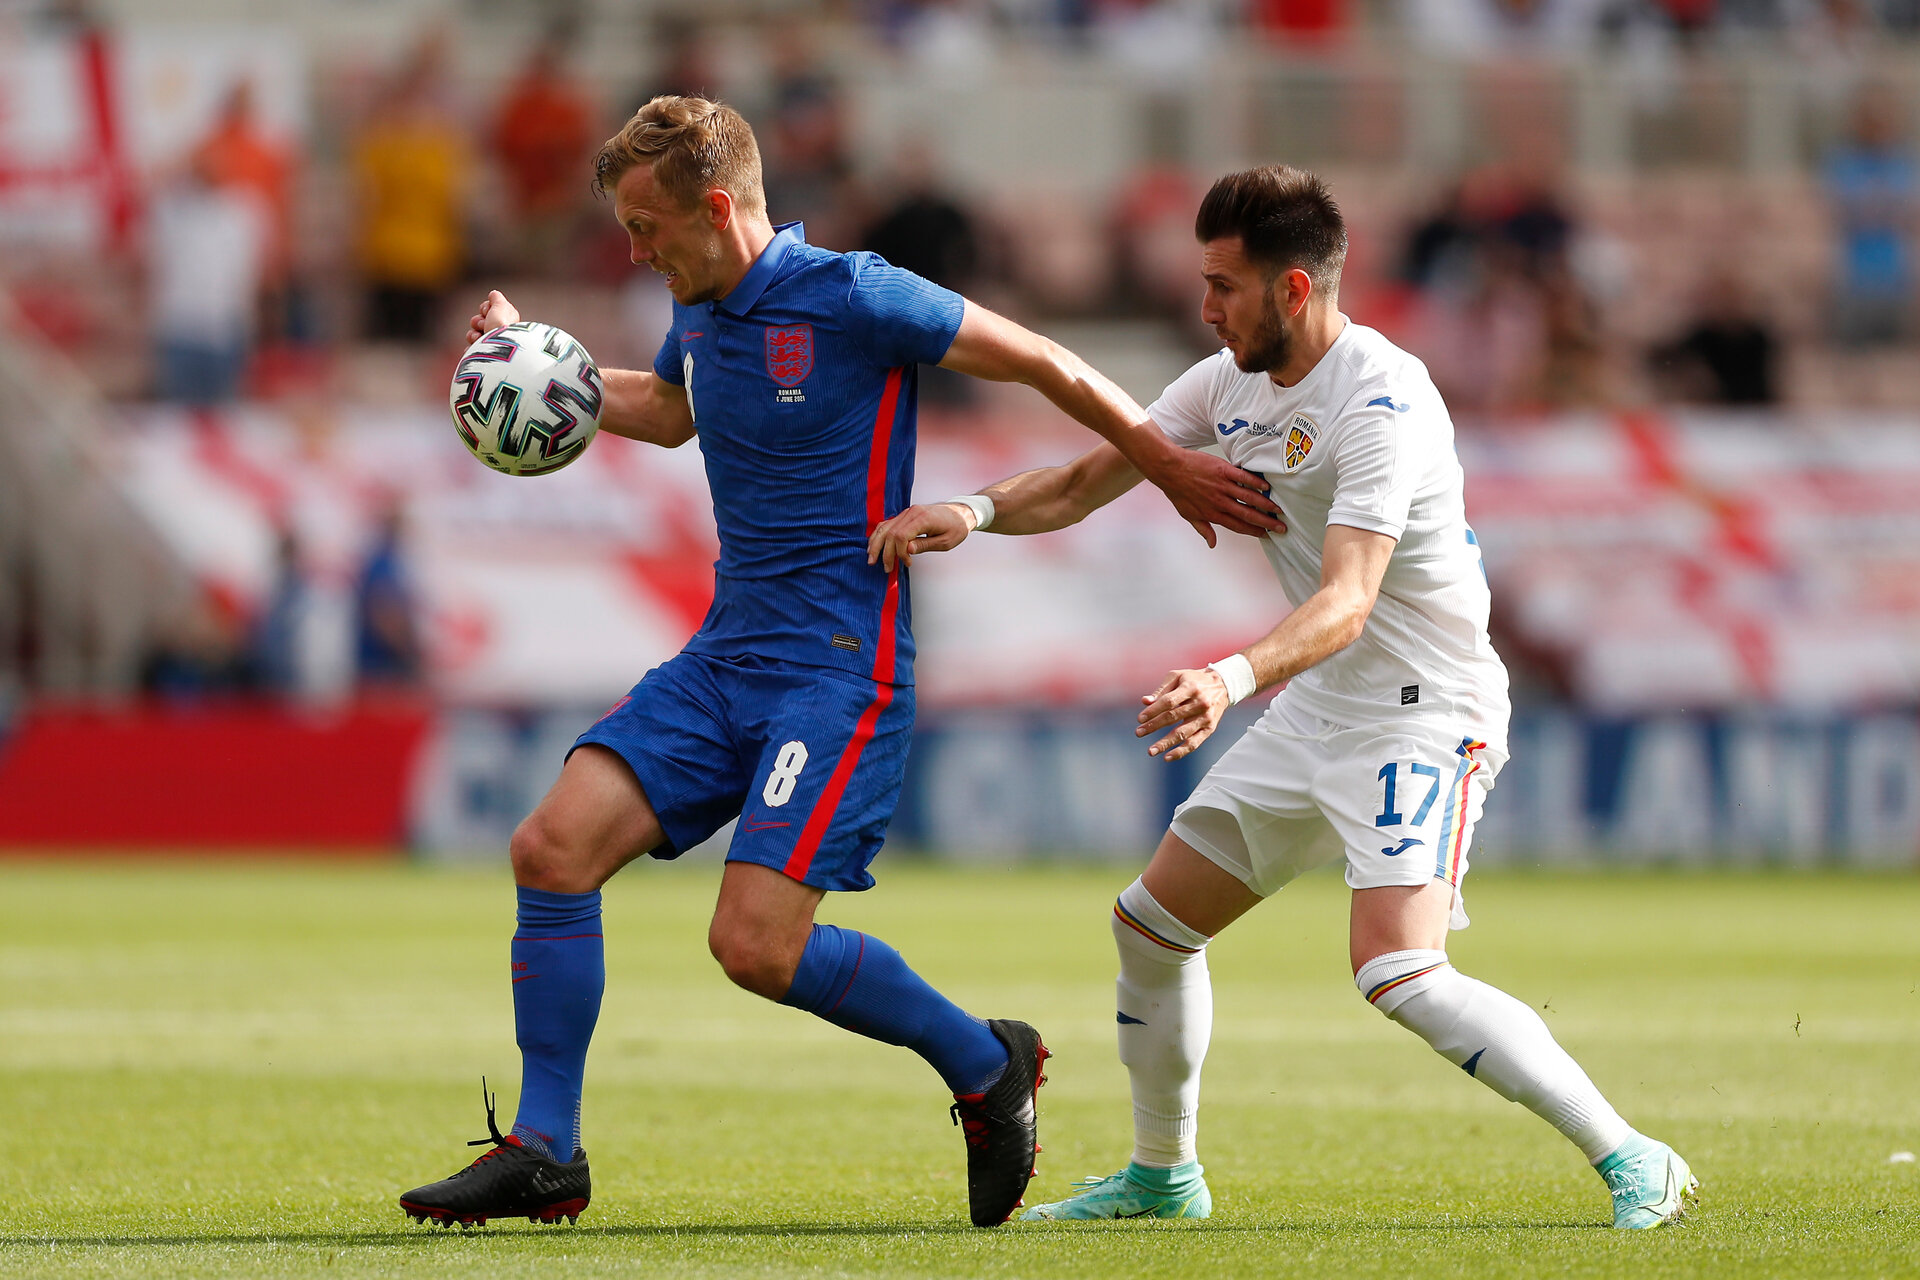 MIDDLESBROUGH, ENGLAND - JUNE 06: James Ward-Prowse of England is closed down by Constantin Paun of Romania during the international friendly match between England and Romania at Riverside Stadium on June 06, 2021 in Middlesbrough, England. (Photo by Lee Smith - Pool/Getty Images)